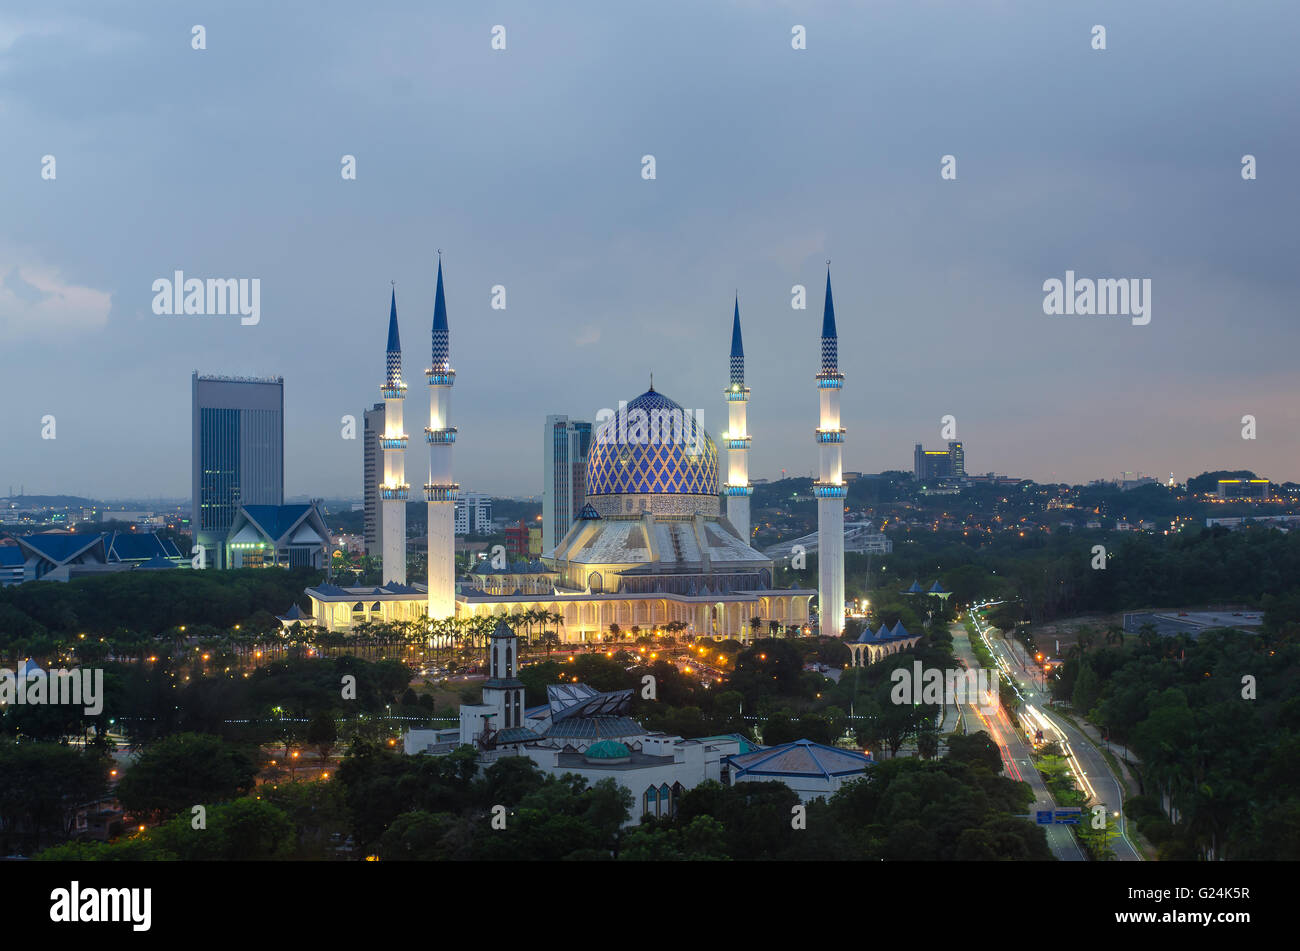 The beautiful Sultan Salahuddin Abdul Aziz Shah Mosque (also known as the Blue Mosque) located at Shah Alam, Selangor, - Stock Image